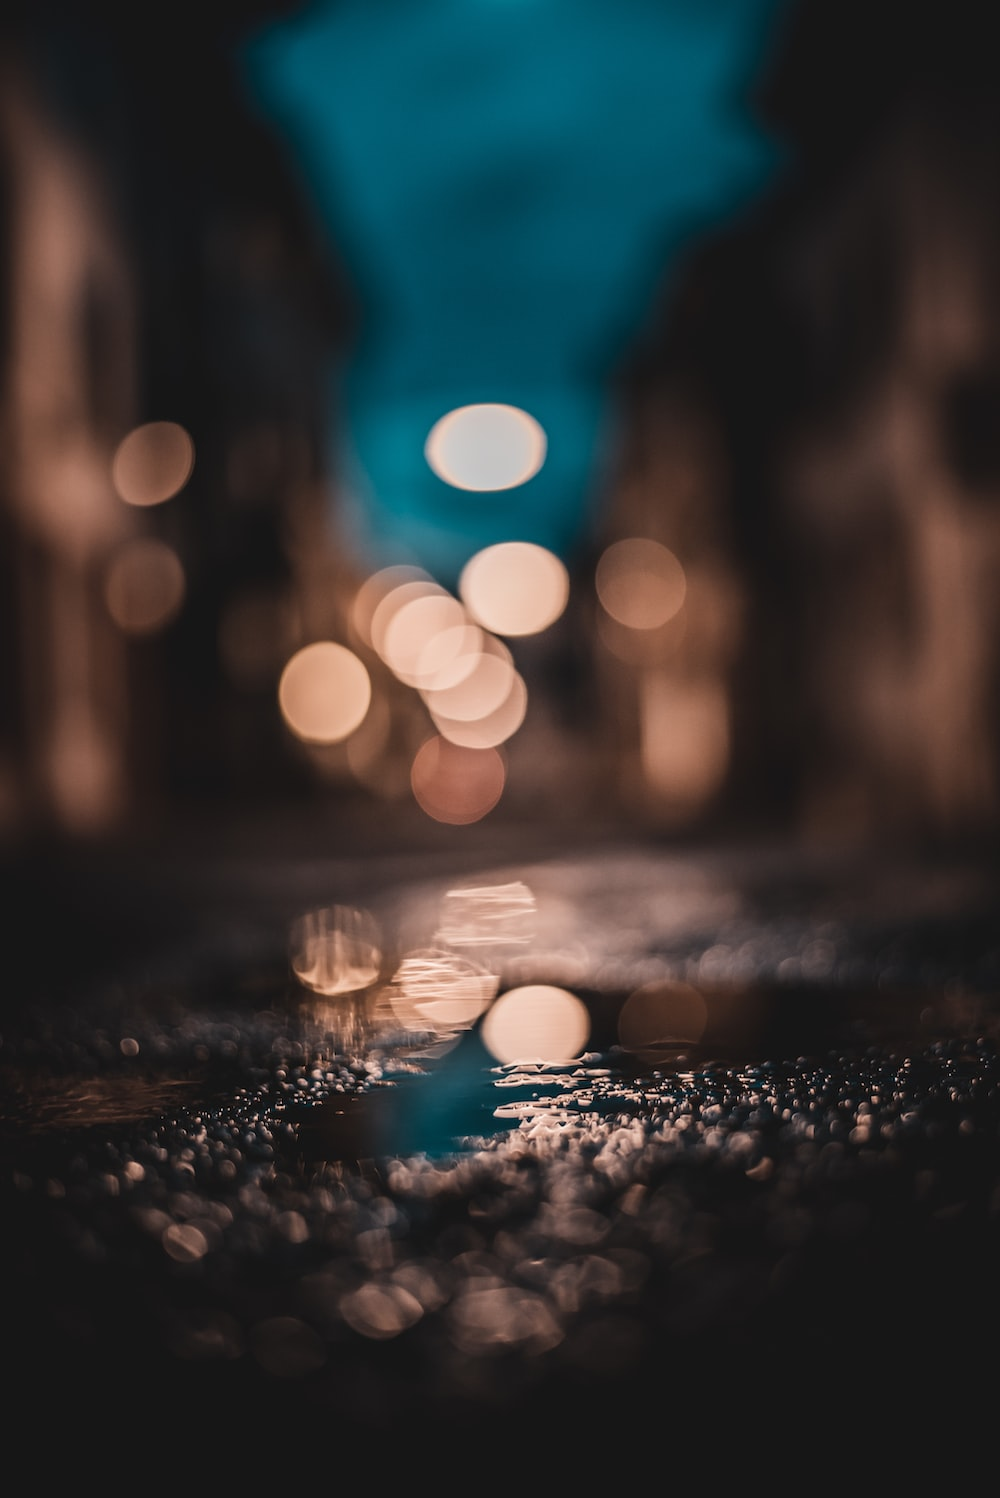 bokeh photography of water droplets on ground